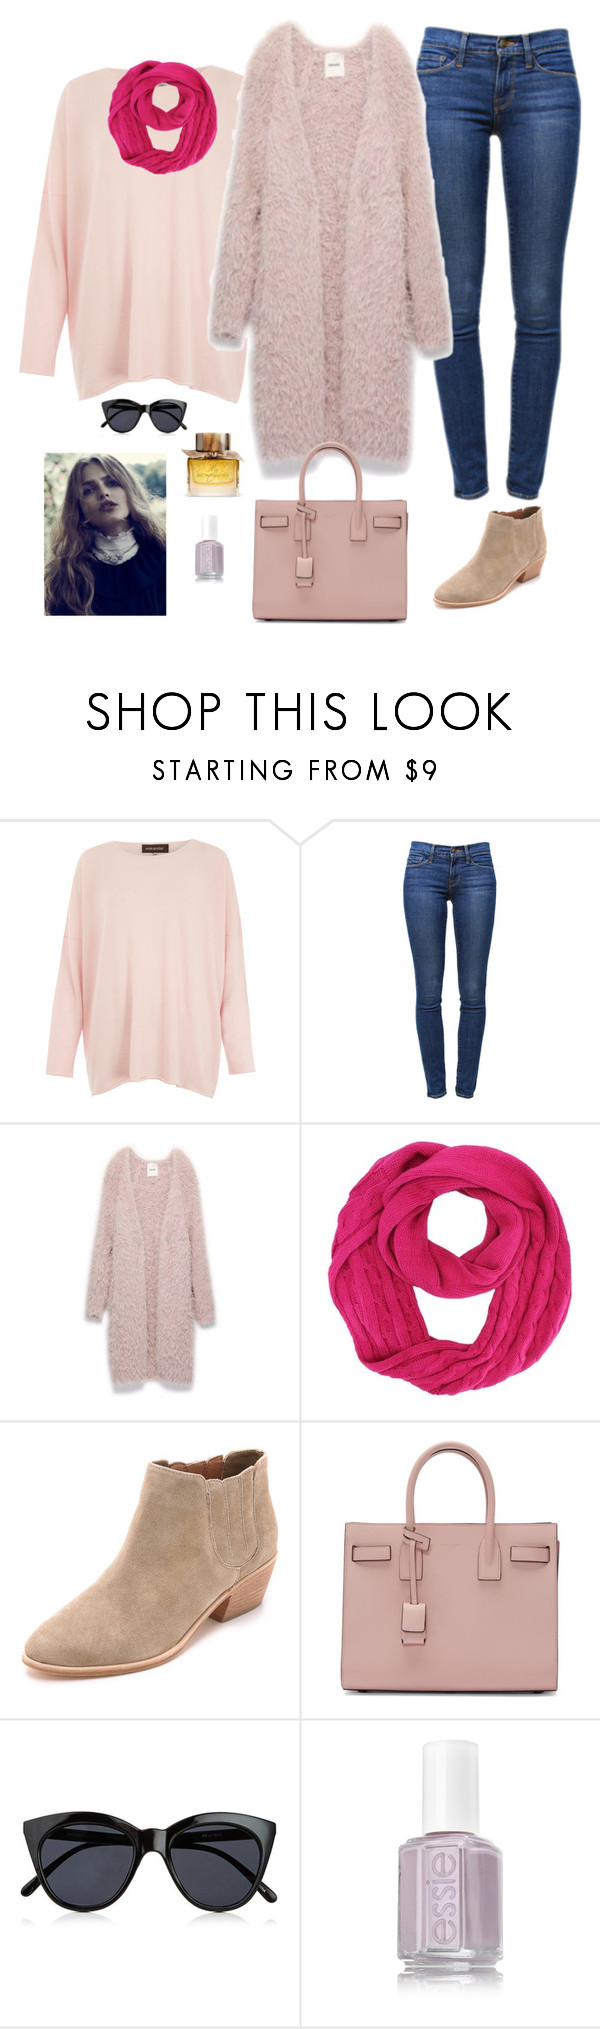 """Untitled #860"" by azra-99 ❤ liked on Polyvore featuring Eskandar, Frame Denim, Joie, Yves Saint Laurent, Le Specs and Burberry"